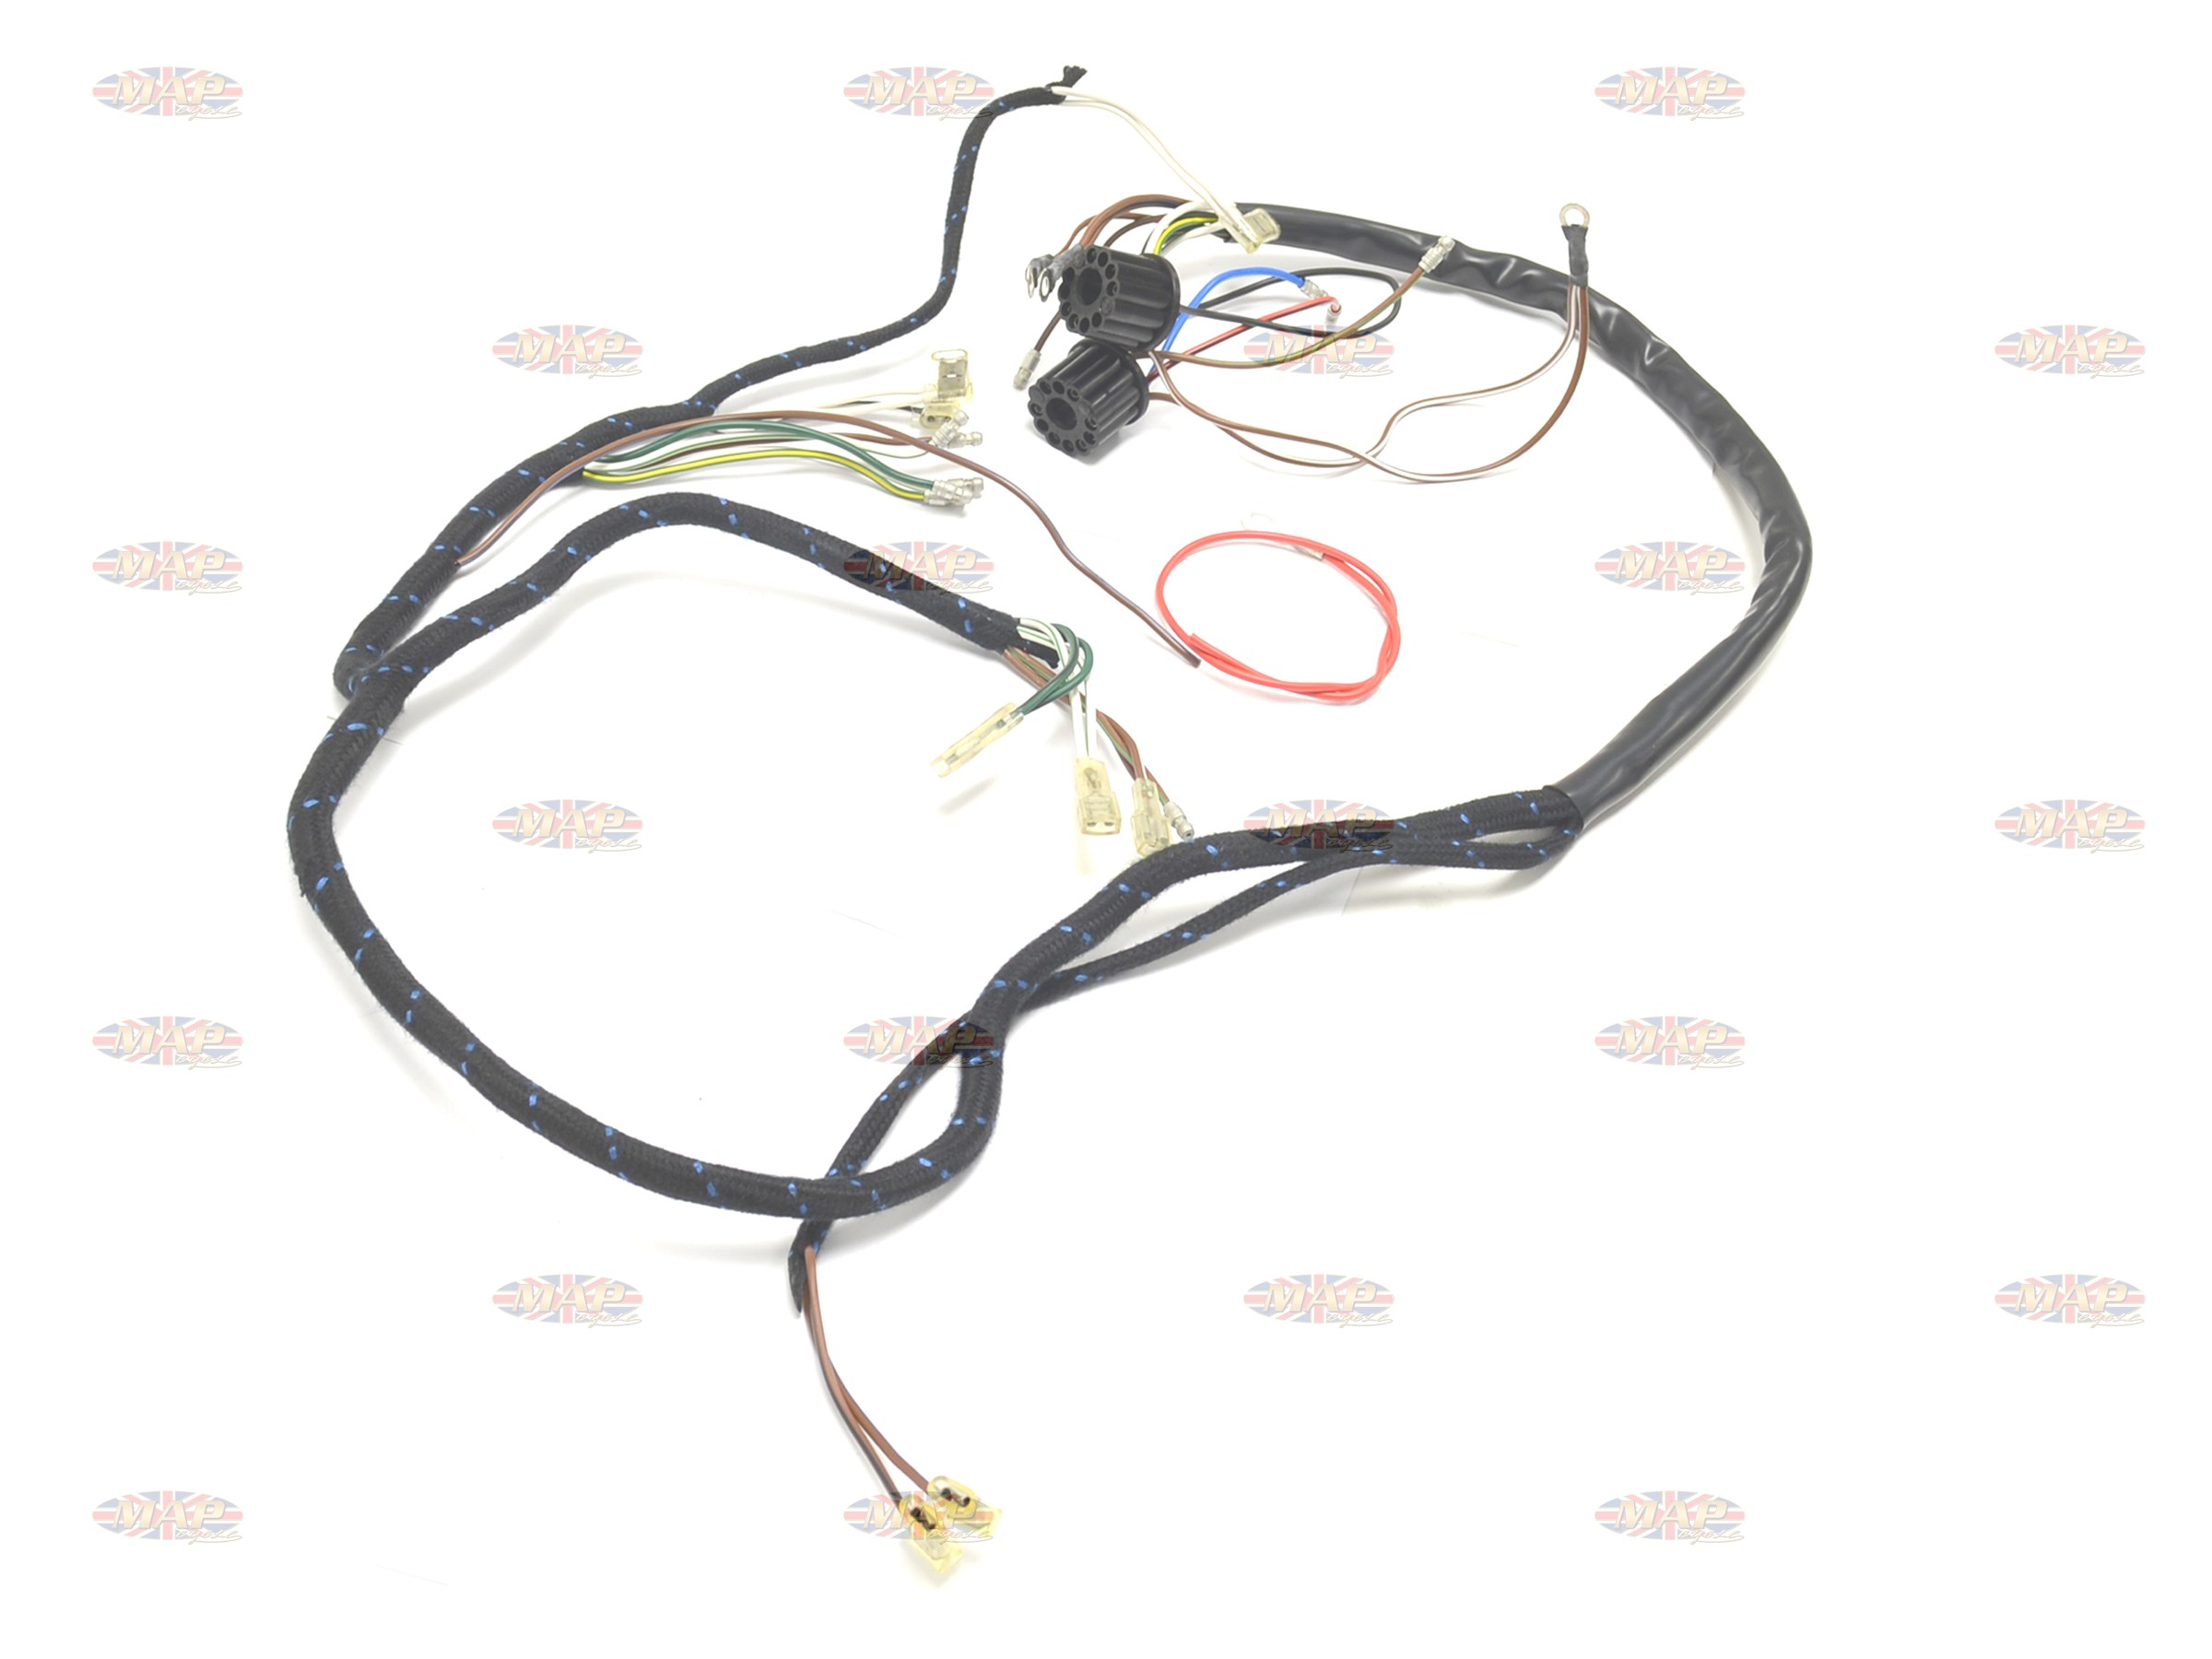 bsa wiring diagram bsa image wiring diagram 6 volt wiring harness wiring diagram and hernes on bsa wiring diagram